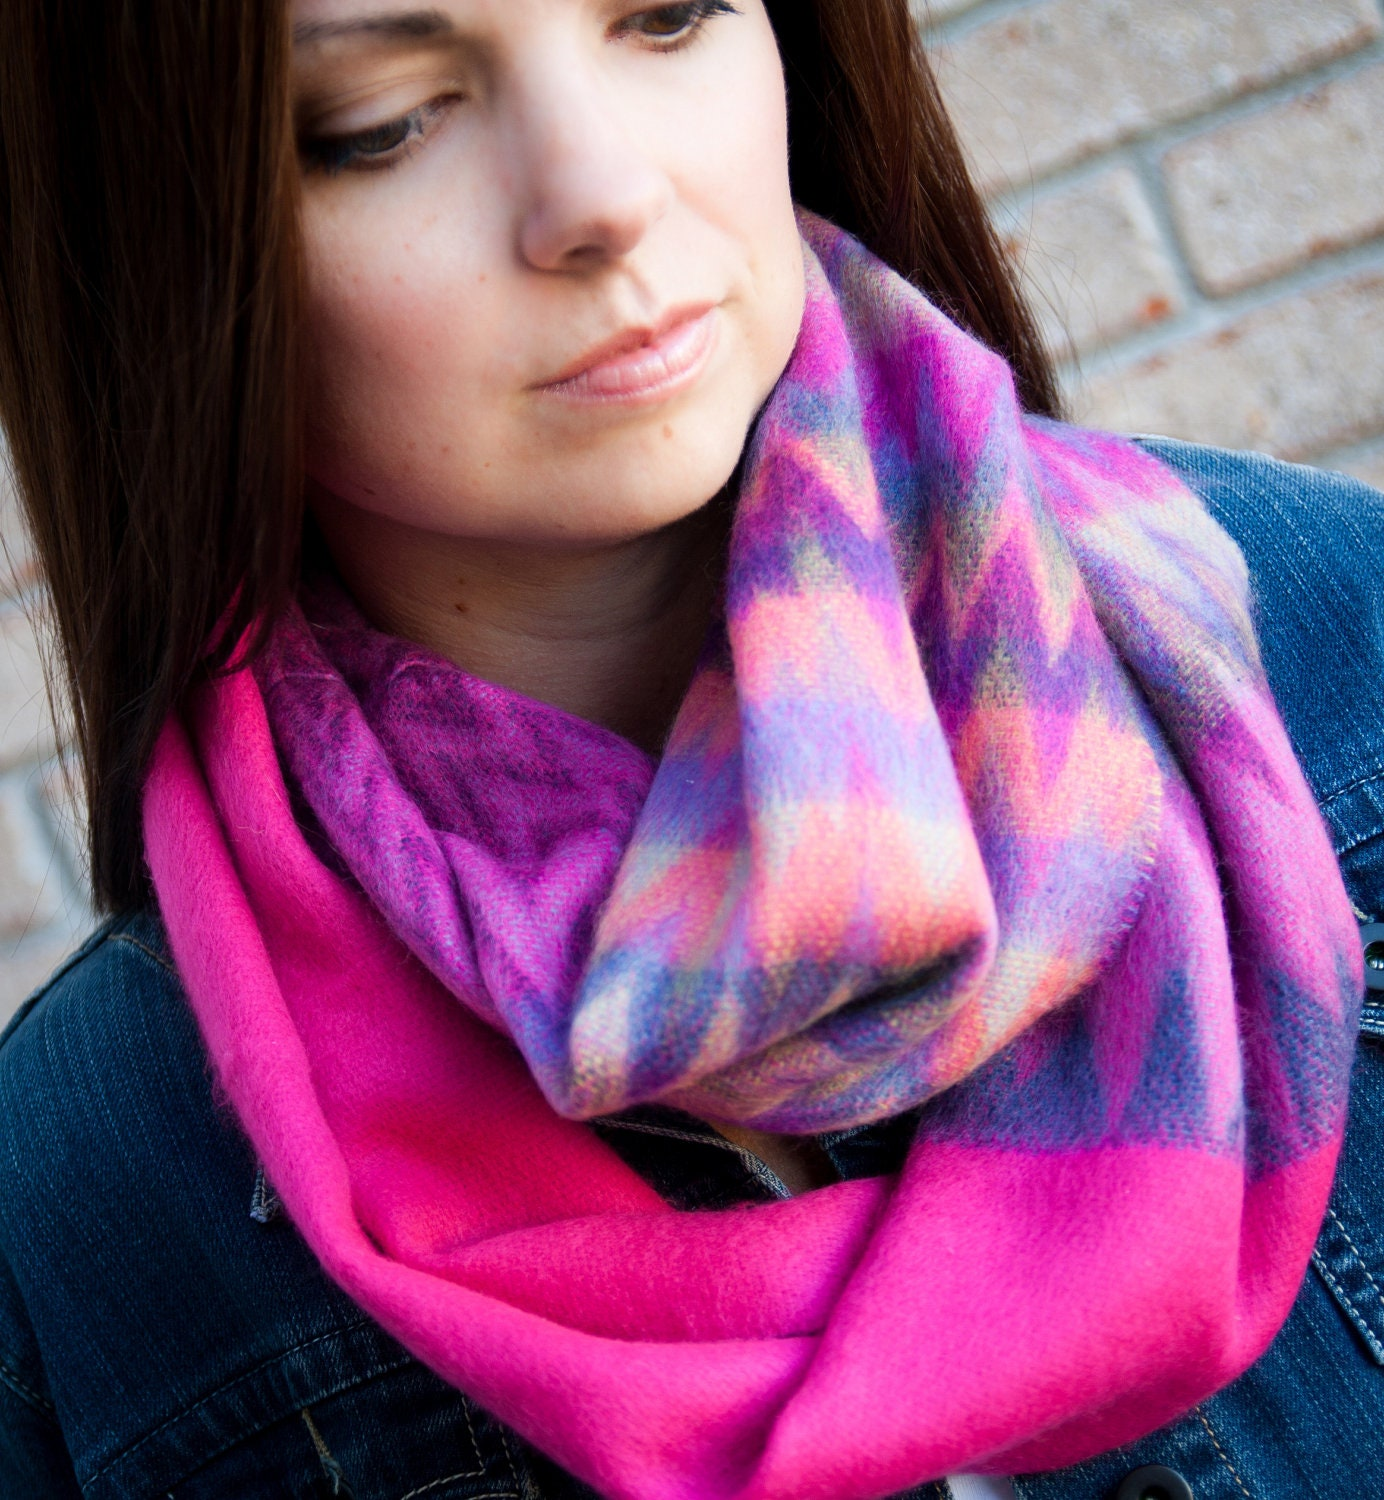 Infinity Scarf - Cozy Warm Infinity Scarf, Color Block Scarf, Chunky Circle Scarf in Hot Pink, Black or Orange